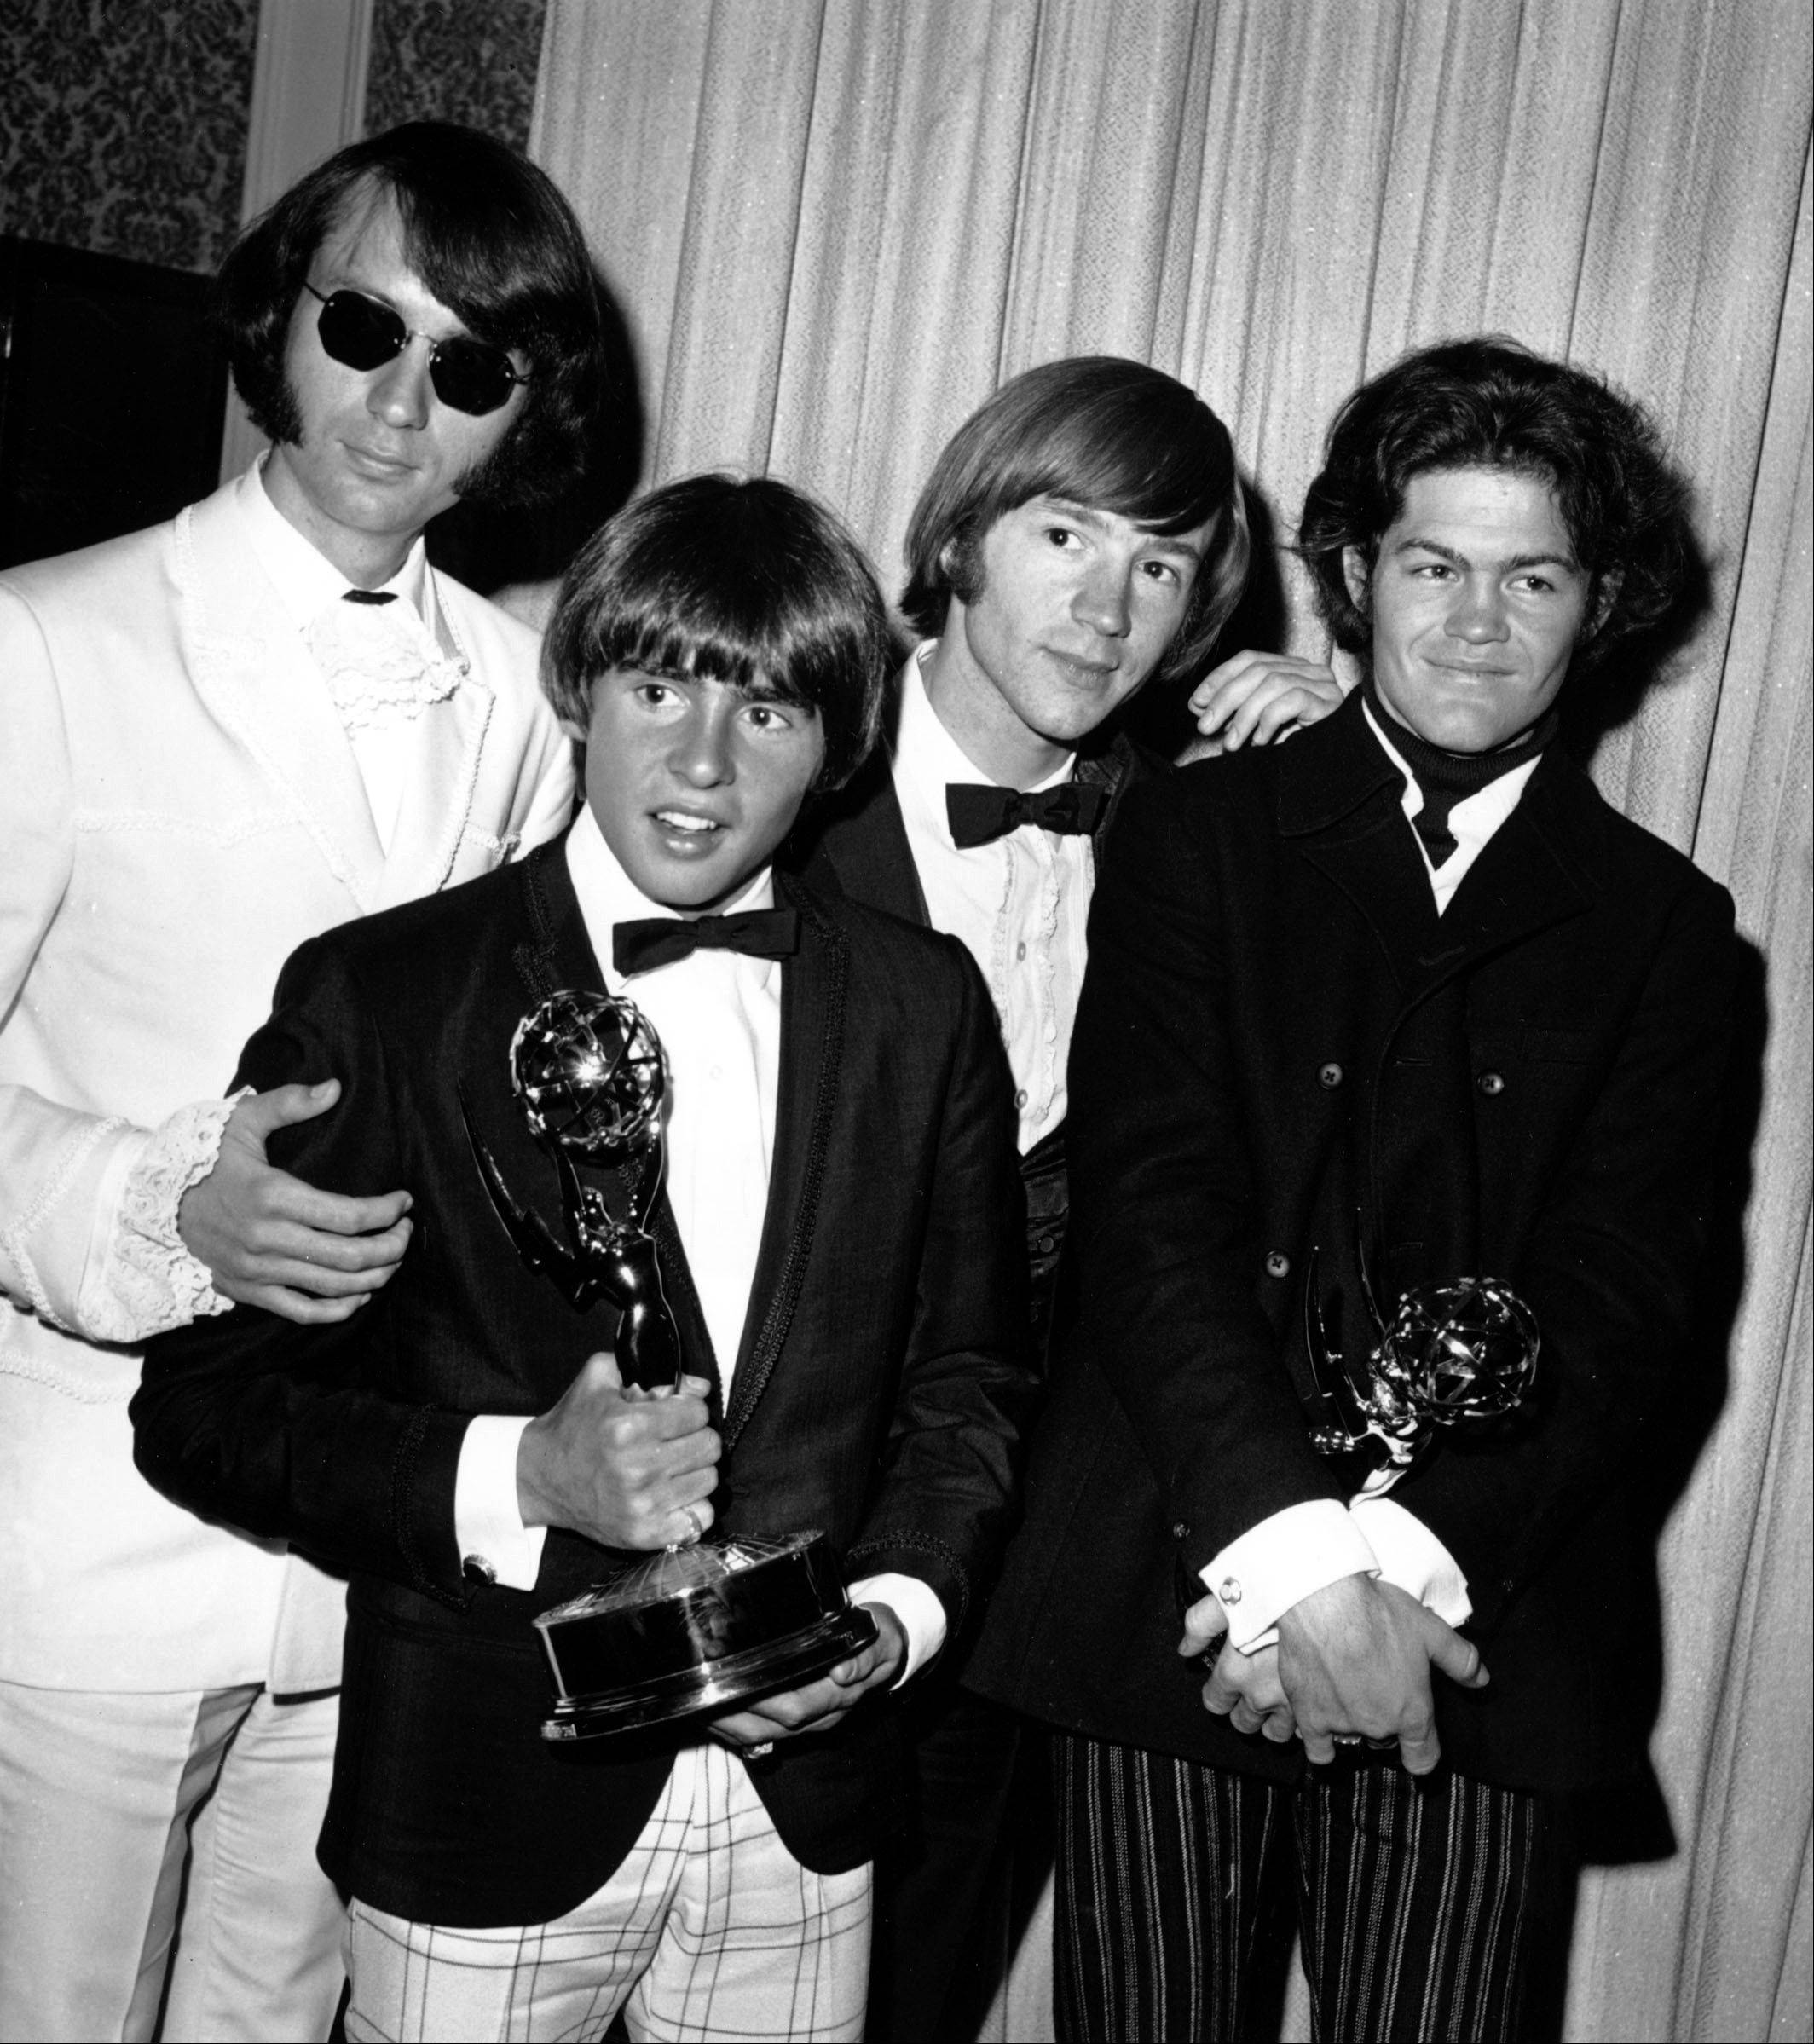 This June 4, 1967 file photo shows The Monkees posing with their Emmy award at the 19th Annual Primetime Emmy Awards in Calif.